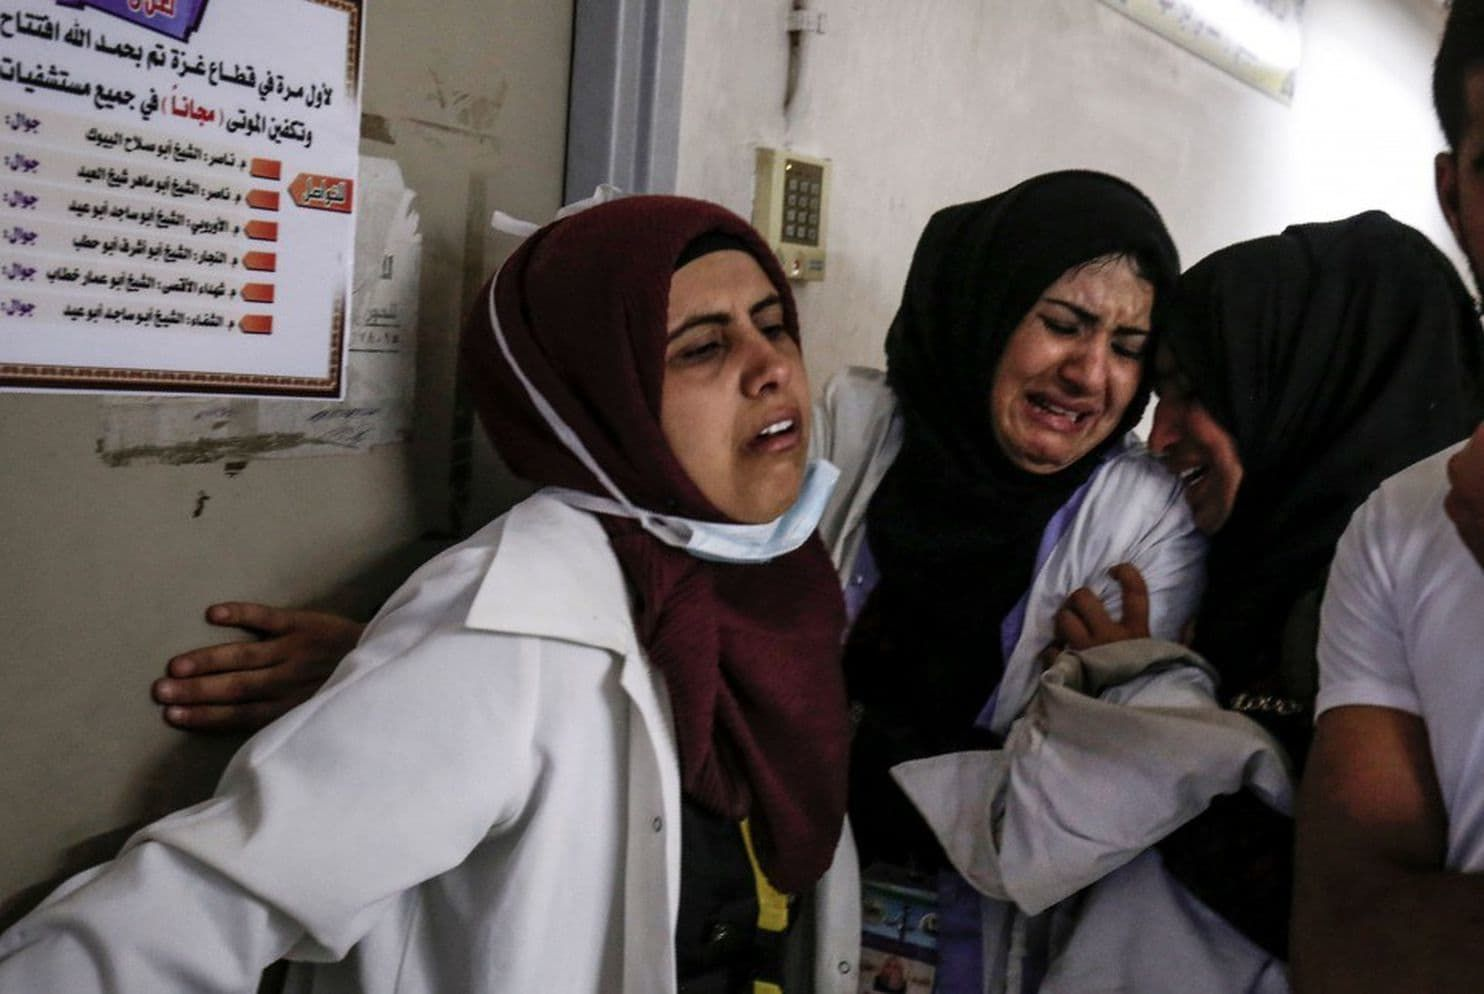 A Palestinian medic was shot dead in Gaza. Now Israel says